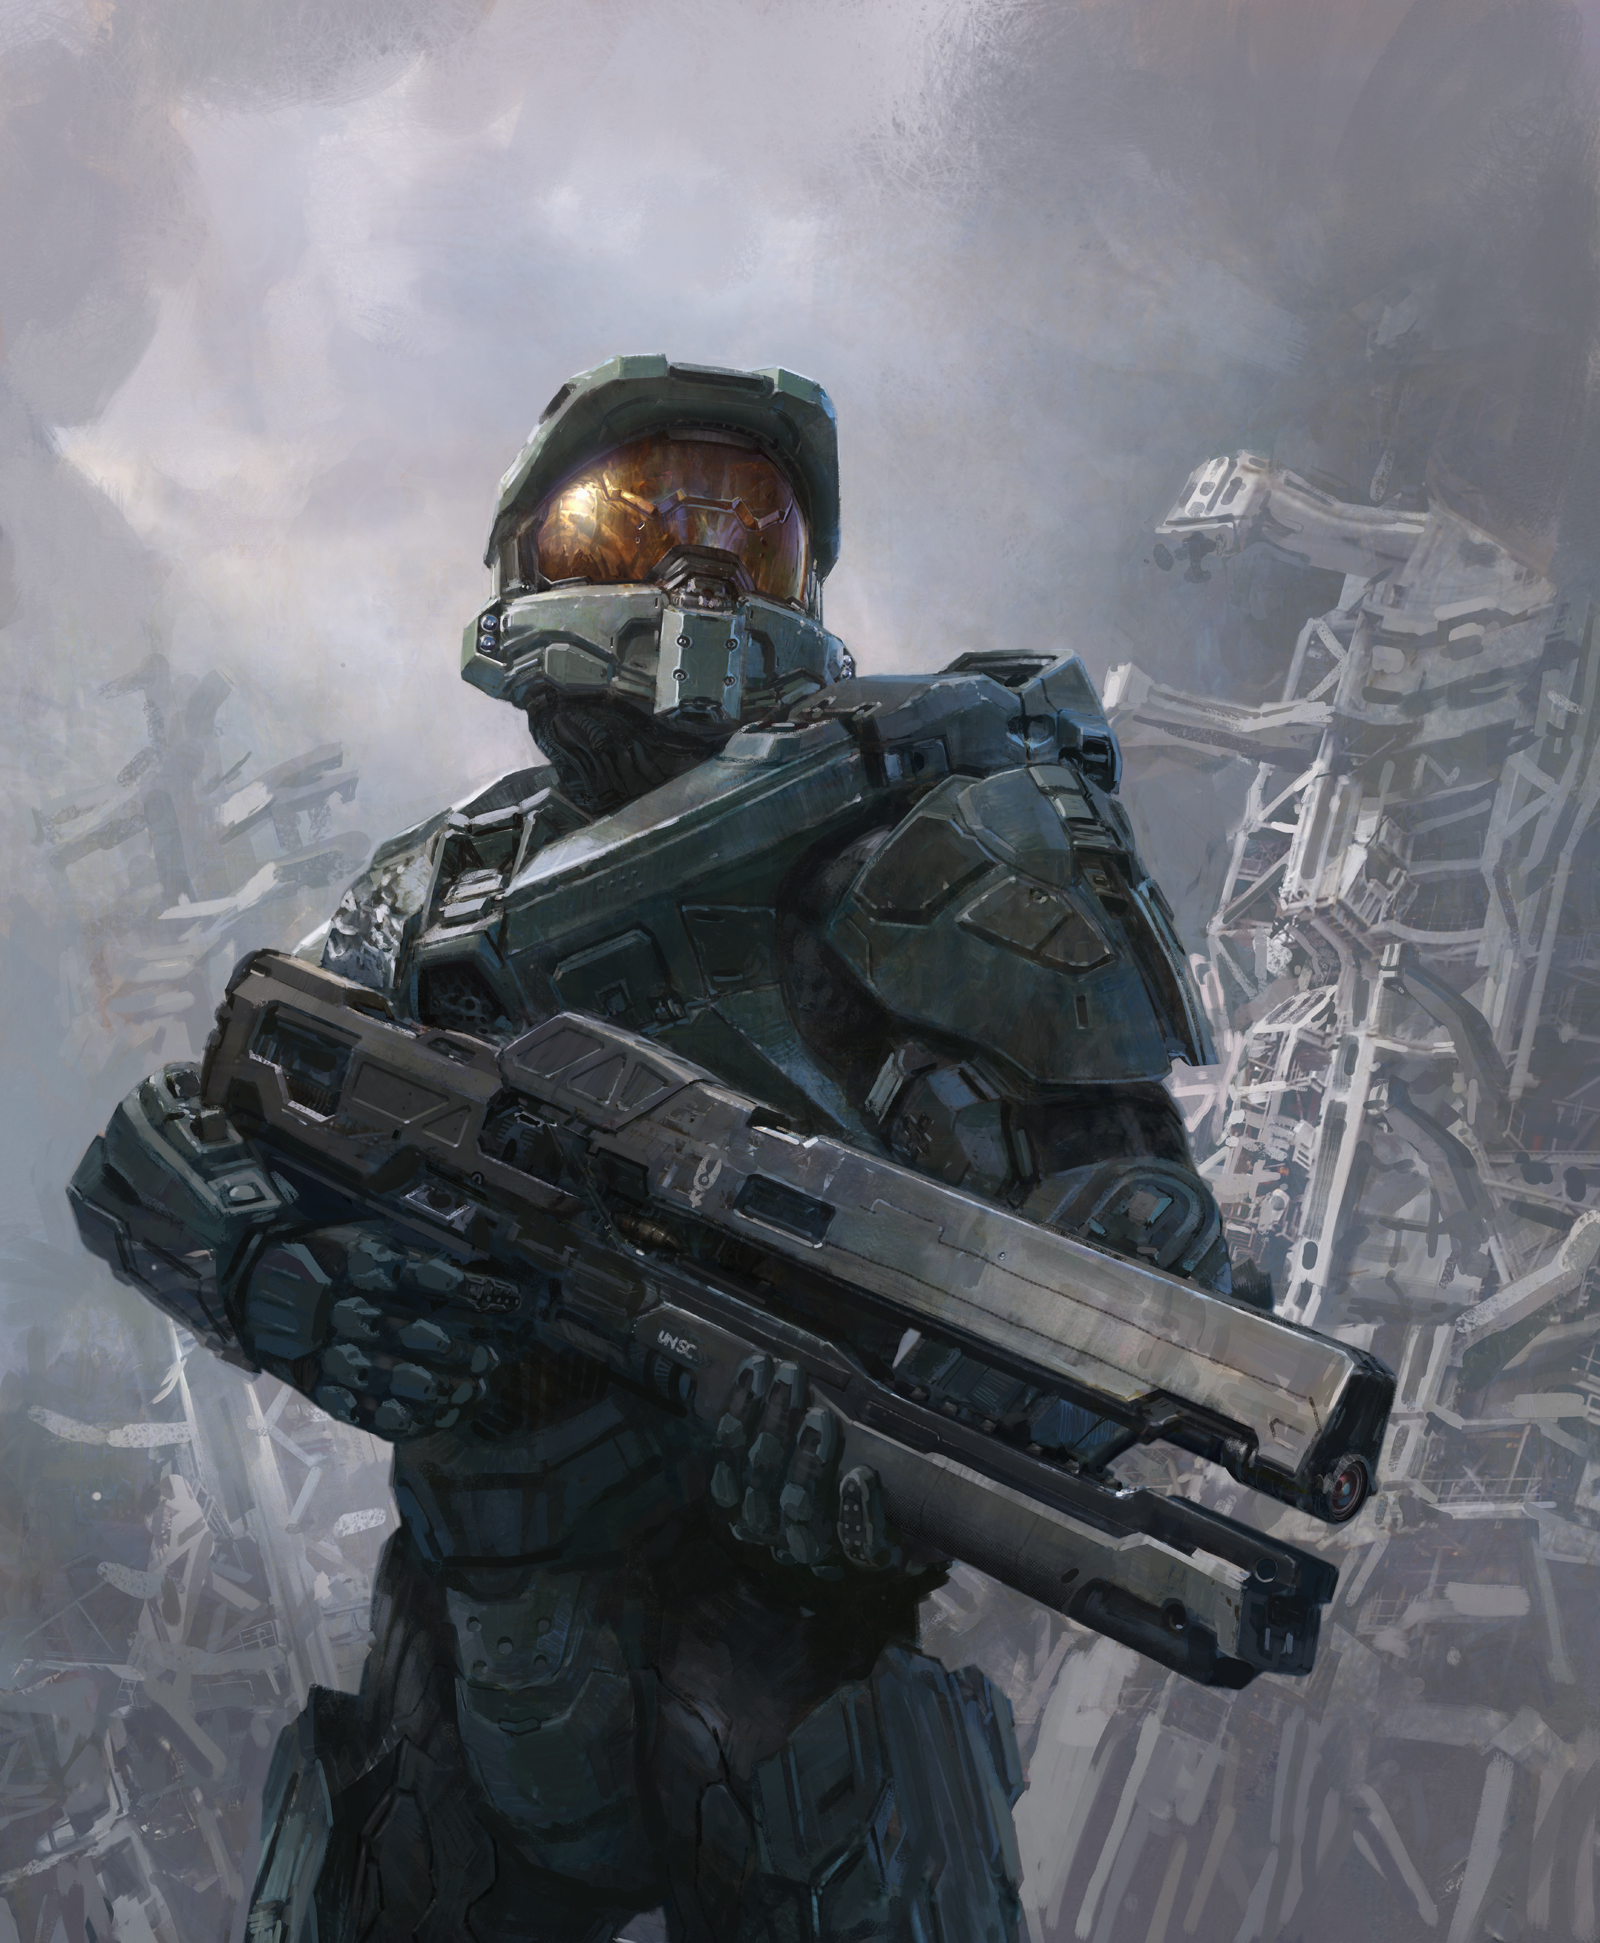 Meet the halo 4 railgun halo diehards - Halo 4 pictures ...